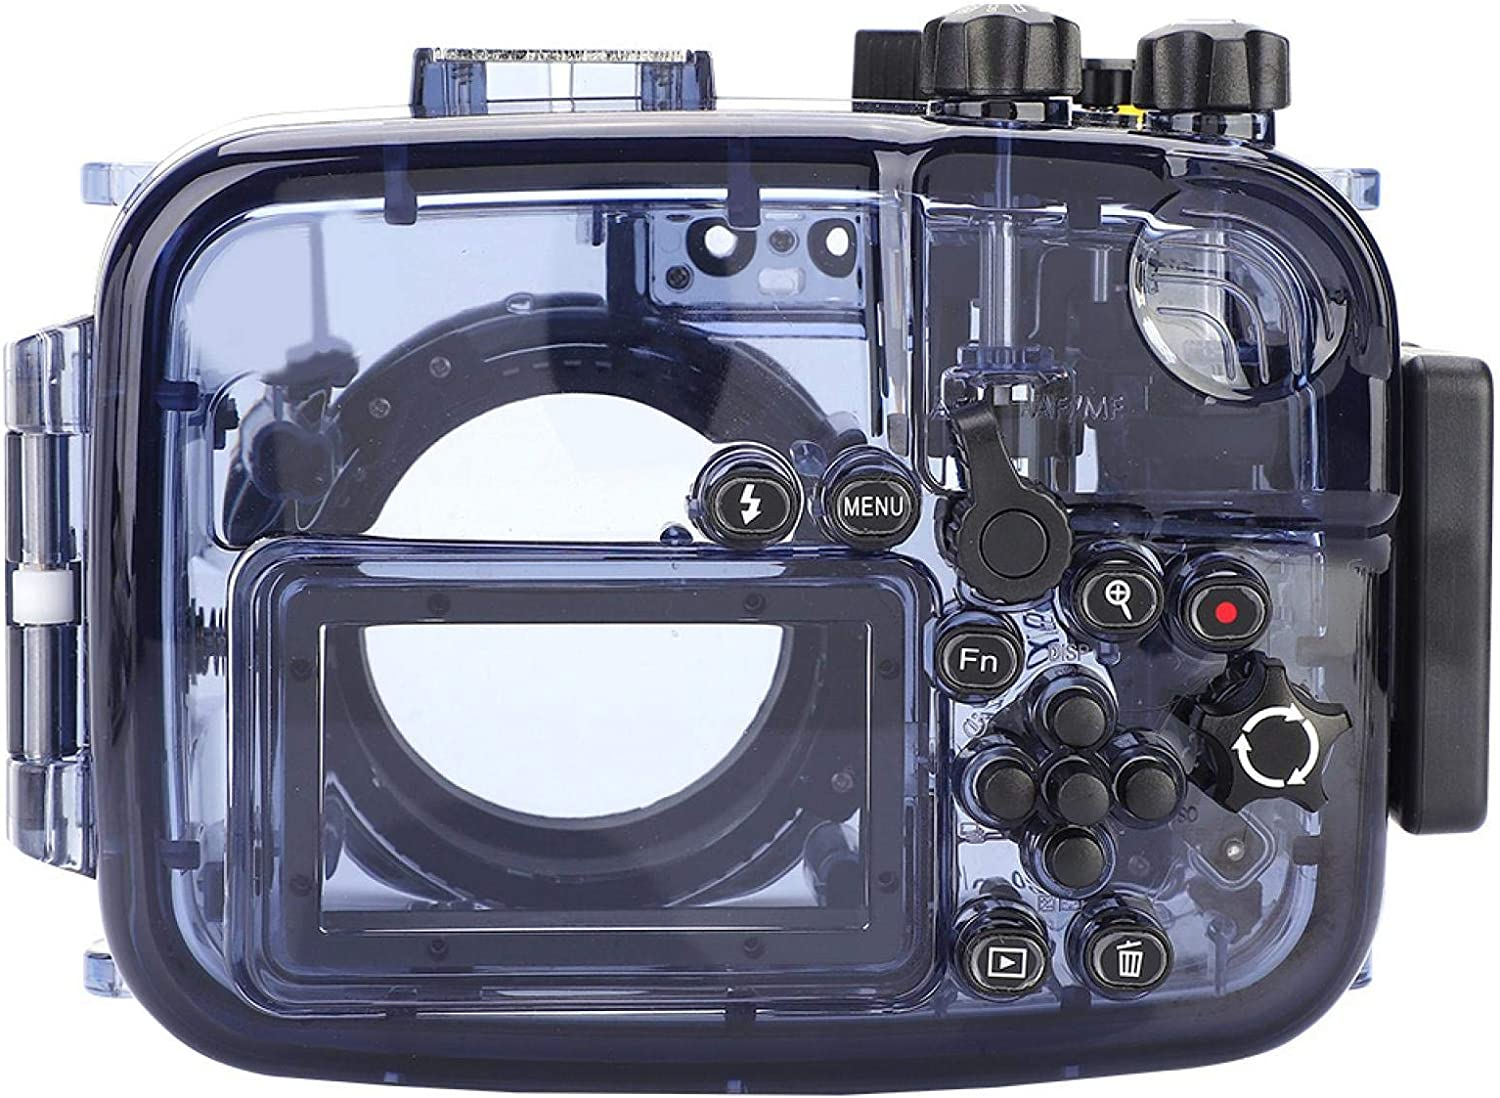 New Super Special SALE held Shipping Free 01 Camera Waterproof Protective Housing Airtight Dustproof Case